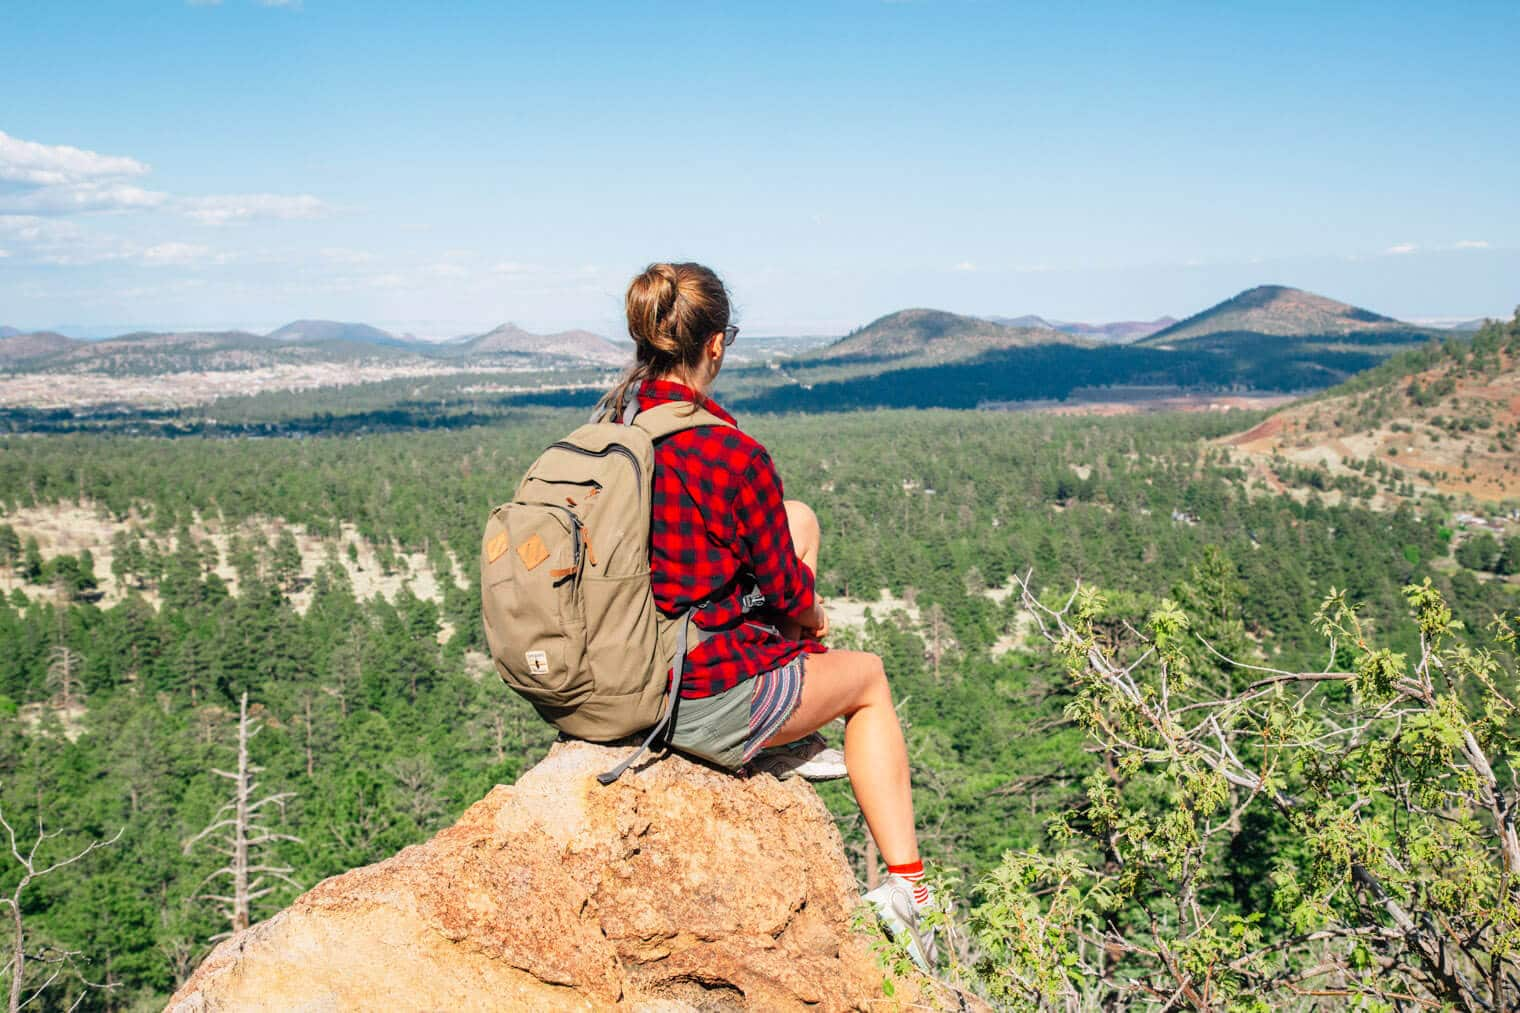 Hike Fat Man's Loop Trail in Flagstaff, Arizona and find spectacular views of the city!